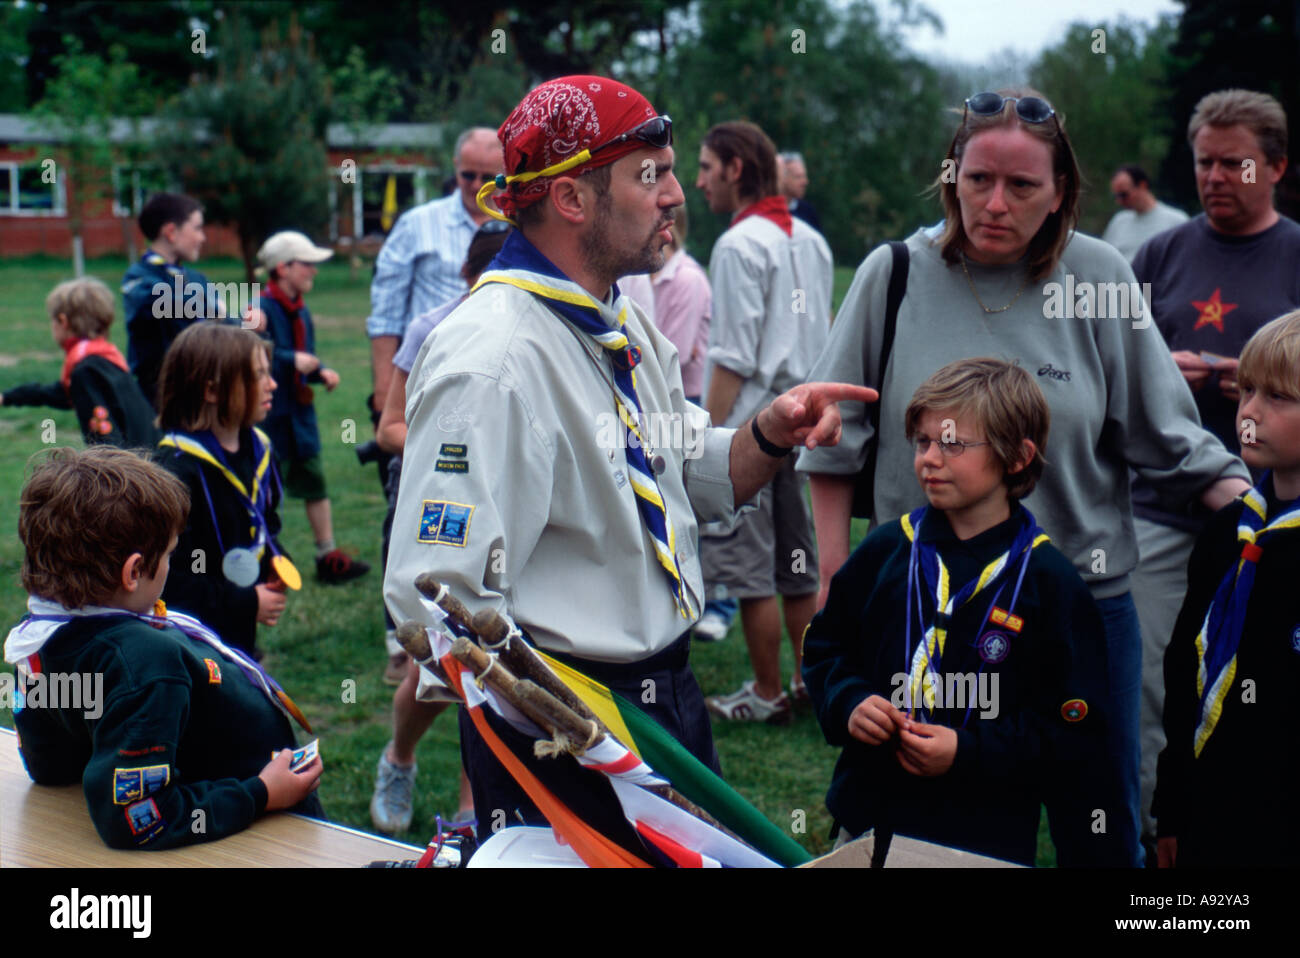 Scoutmaster at camp instructs scouts nr London England uk britain europe eu - Stock Image